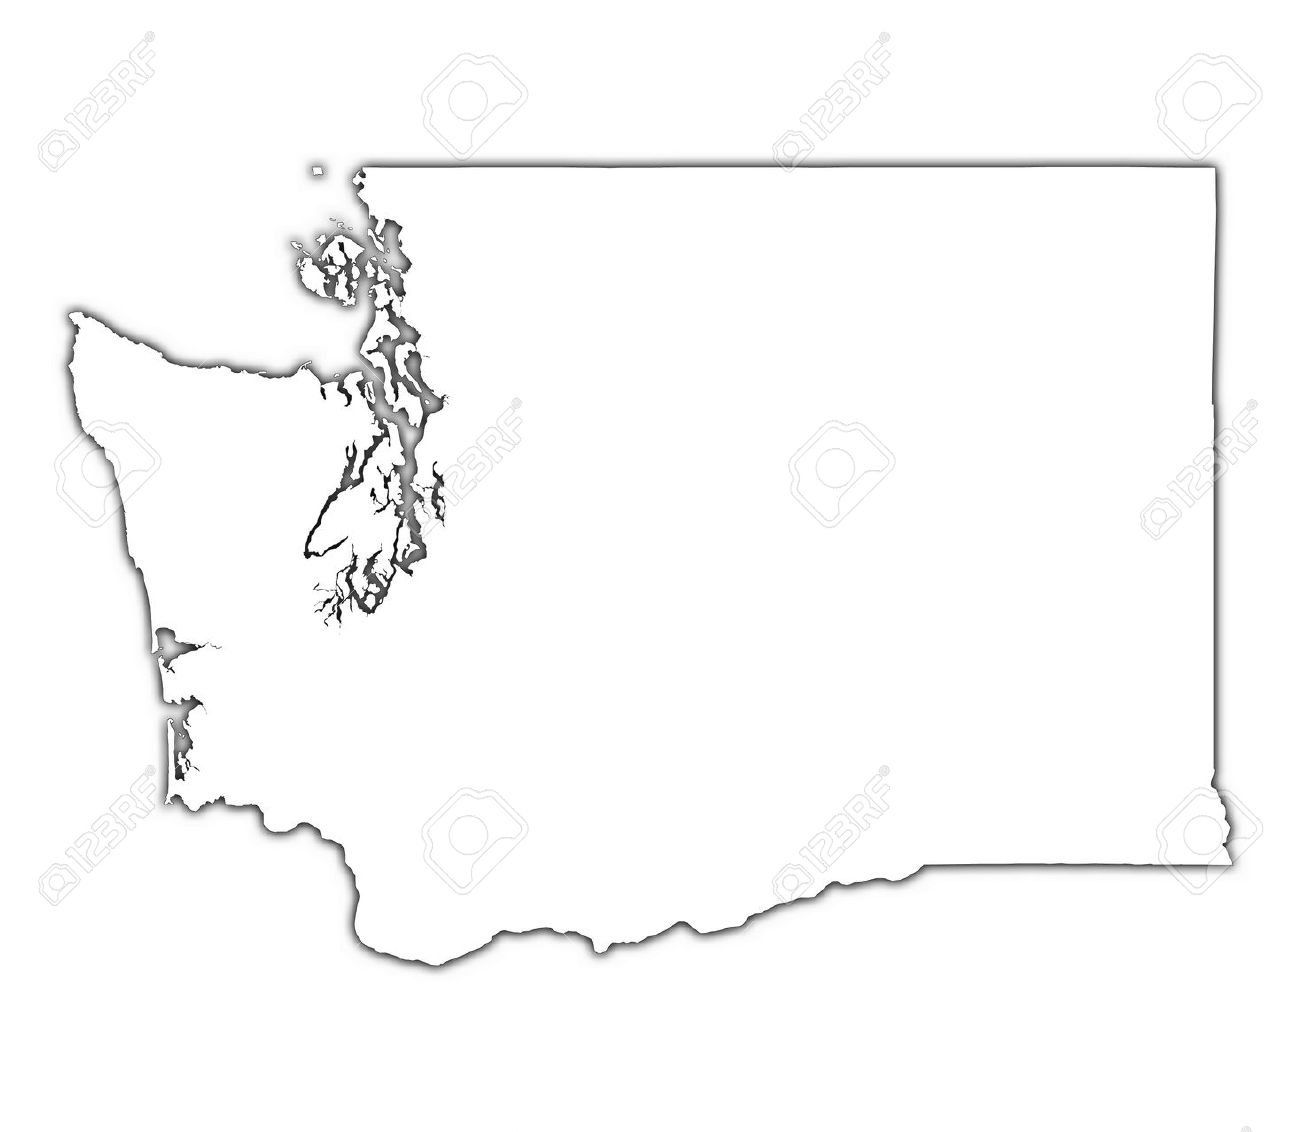 Clipart states outline png free stock Washington state outline clipart - ClipartFest png free stock